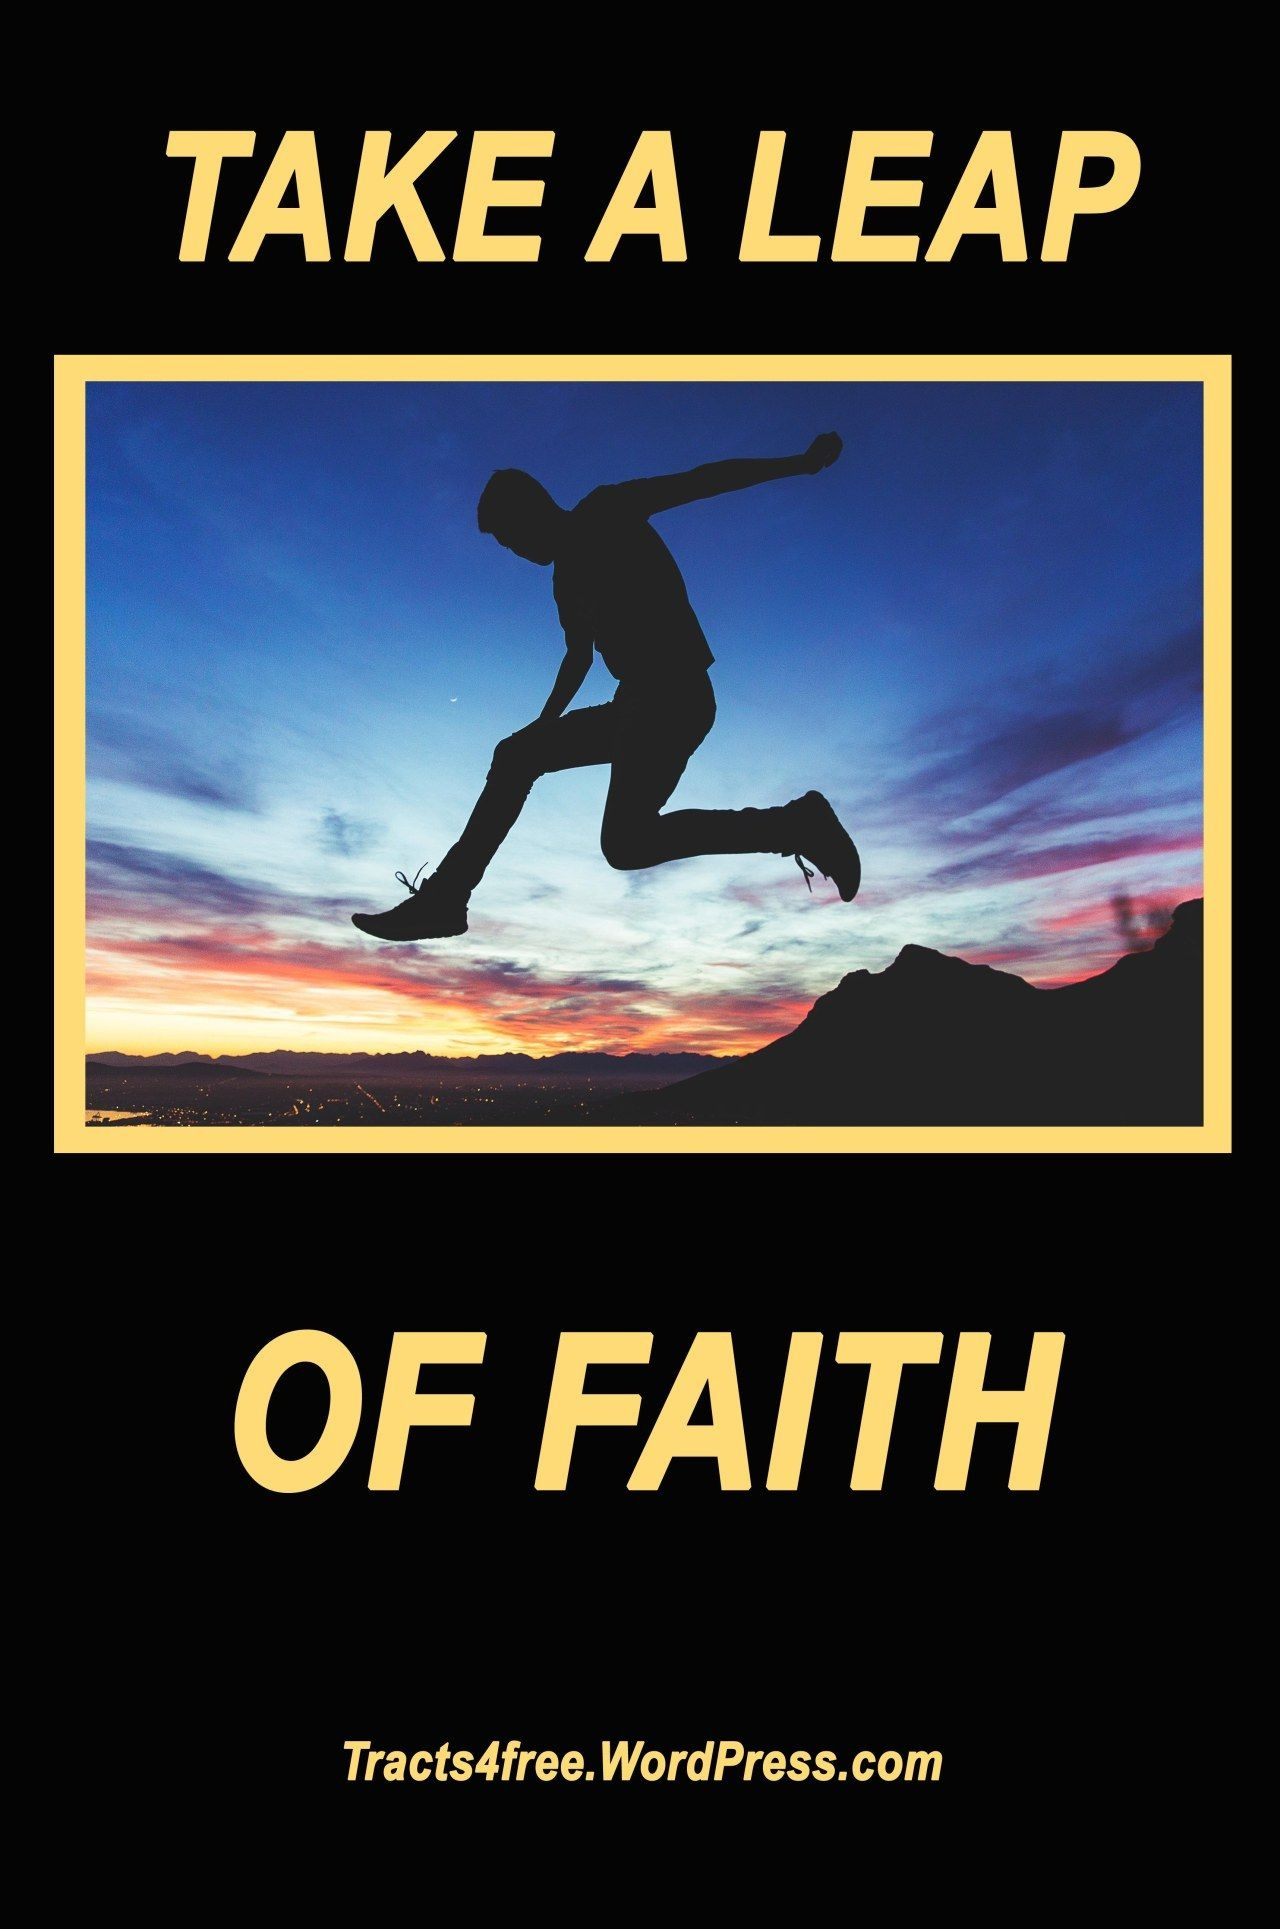 Motivational Posters 1 | Christian Posters | Christian Motivation - Free Printable Sports Posters